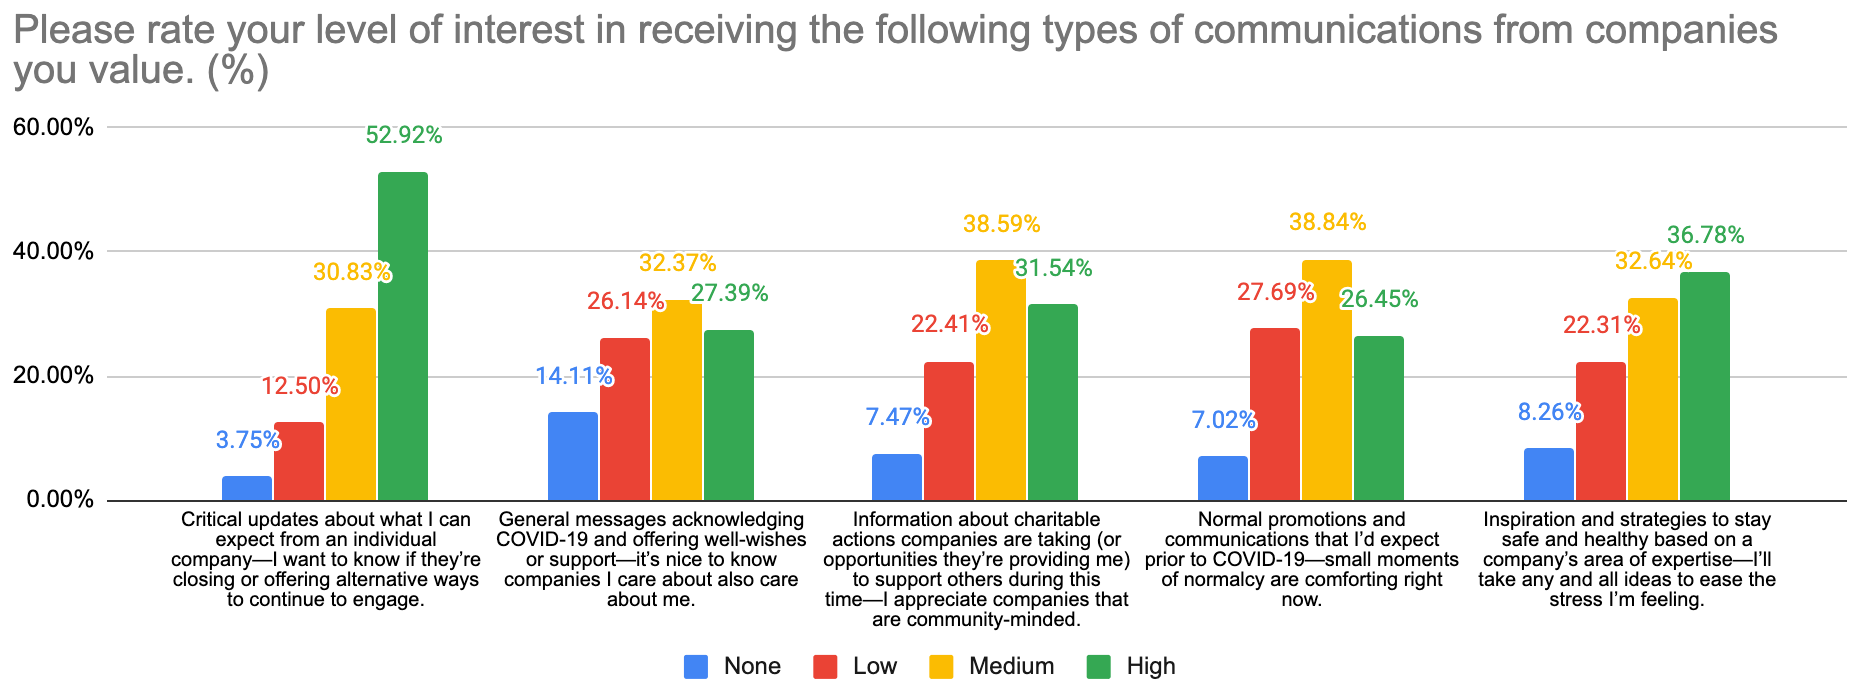 Interest in COVID communication types